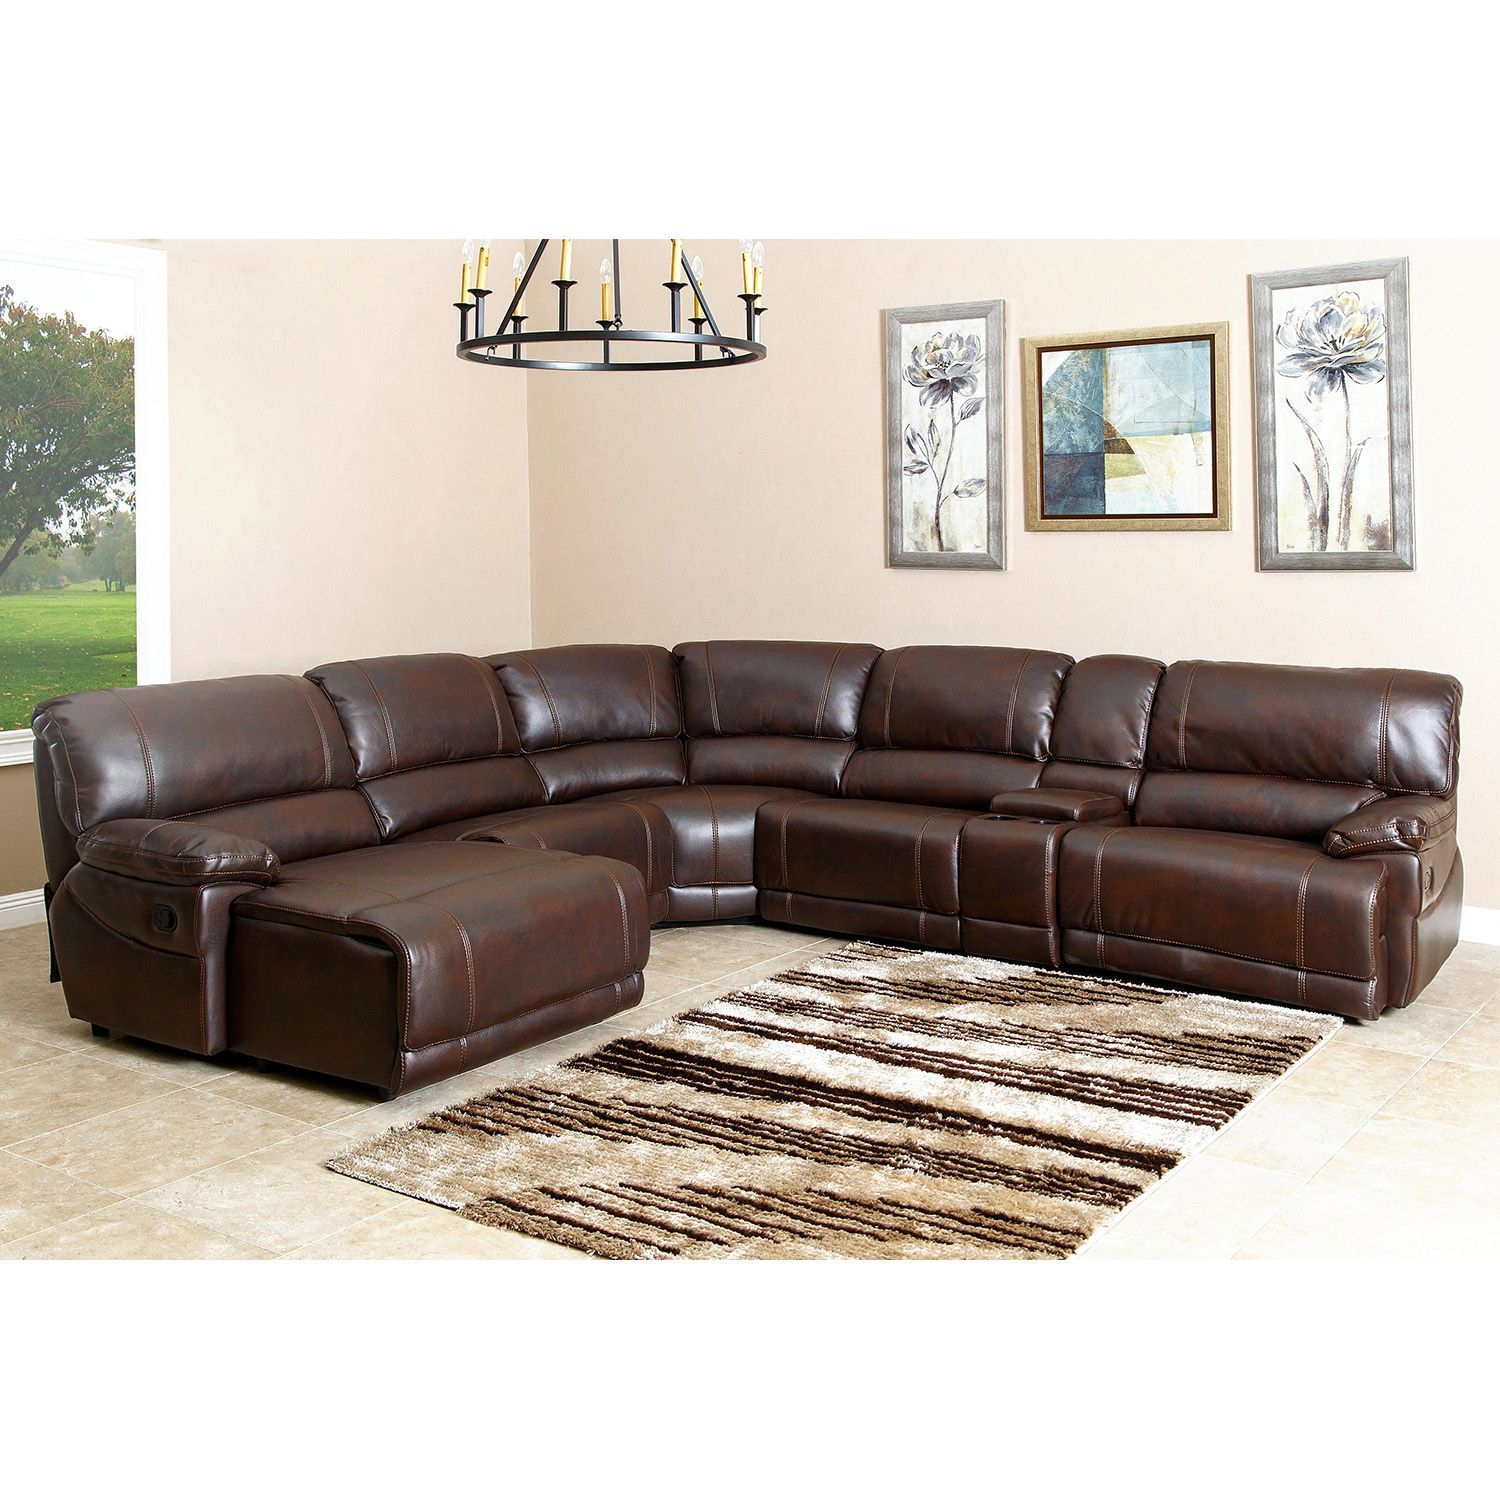 Best Carrington 6 Piece Sectional Sofa Sam S Club Family 640 x 480